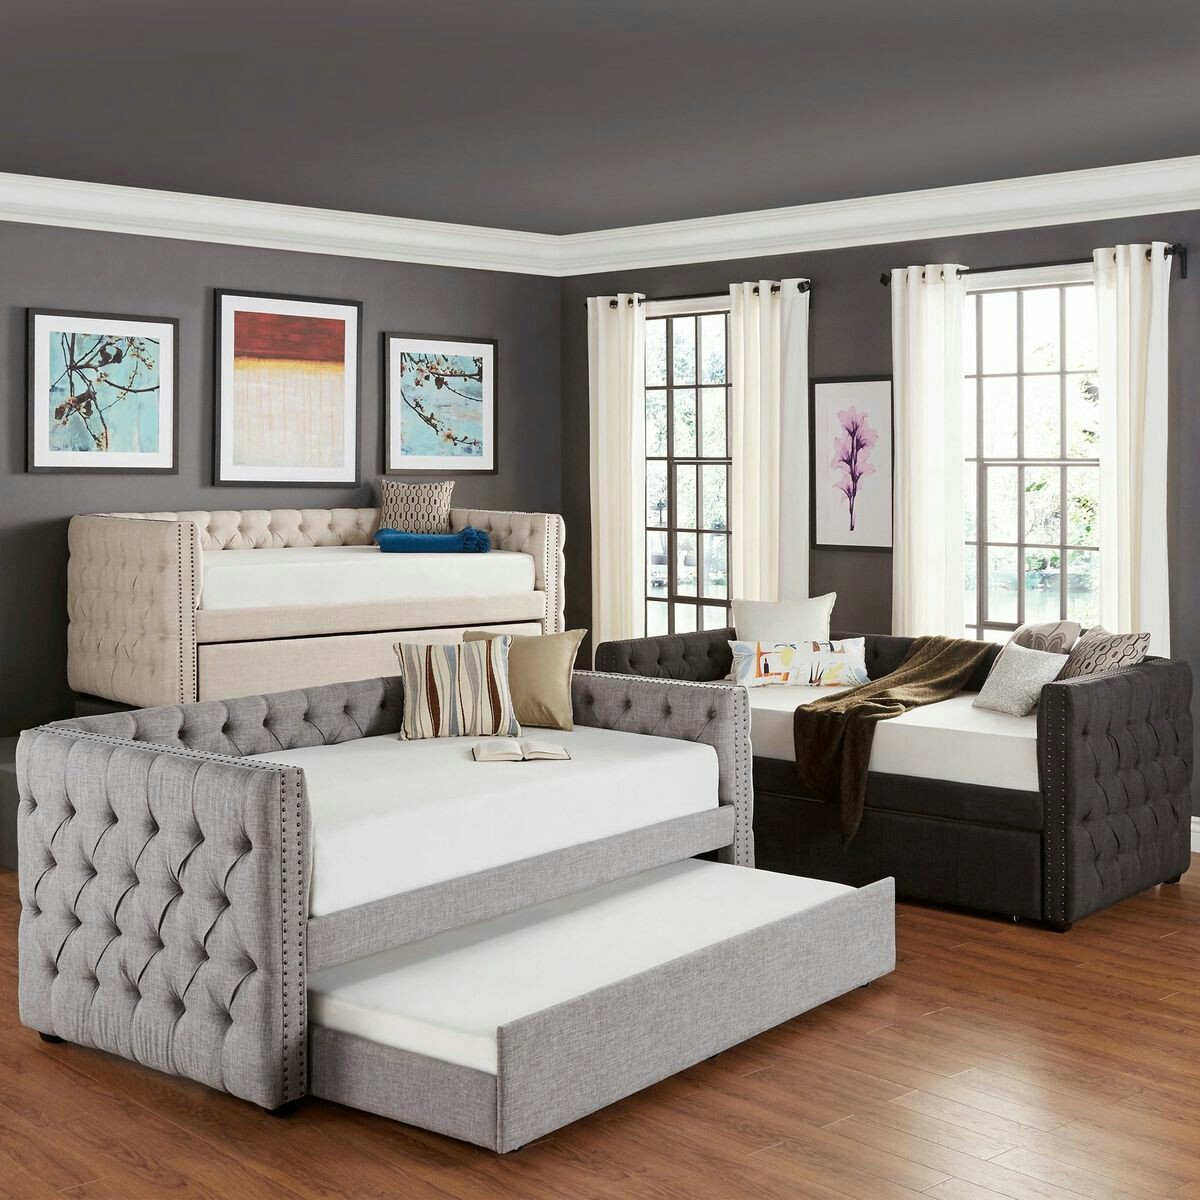 Deals In Furniture: 60 Images Of Space Saving Beds Furniture Design, Ideal For